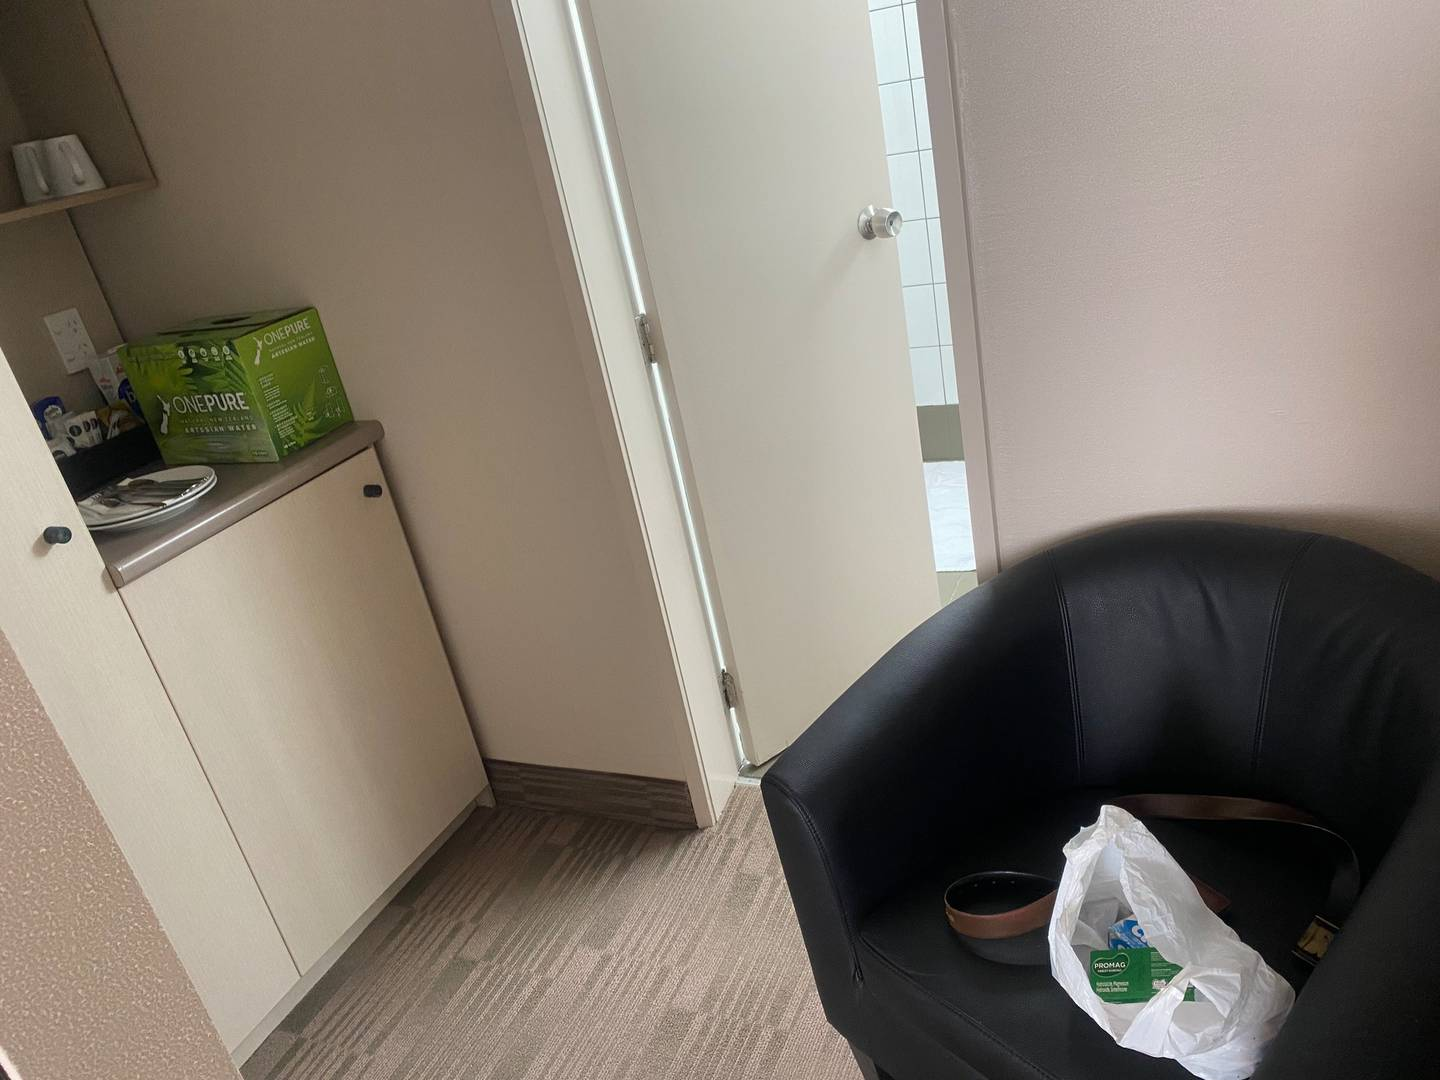 The returnee says his tiny room has no table to eat and work on and barely any room to move about. Photo / Supplied